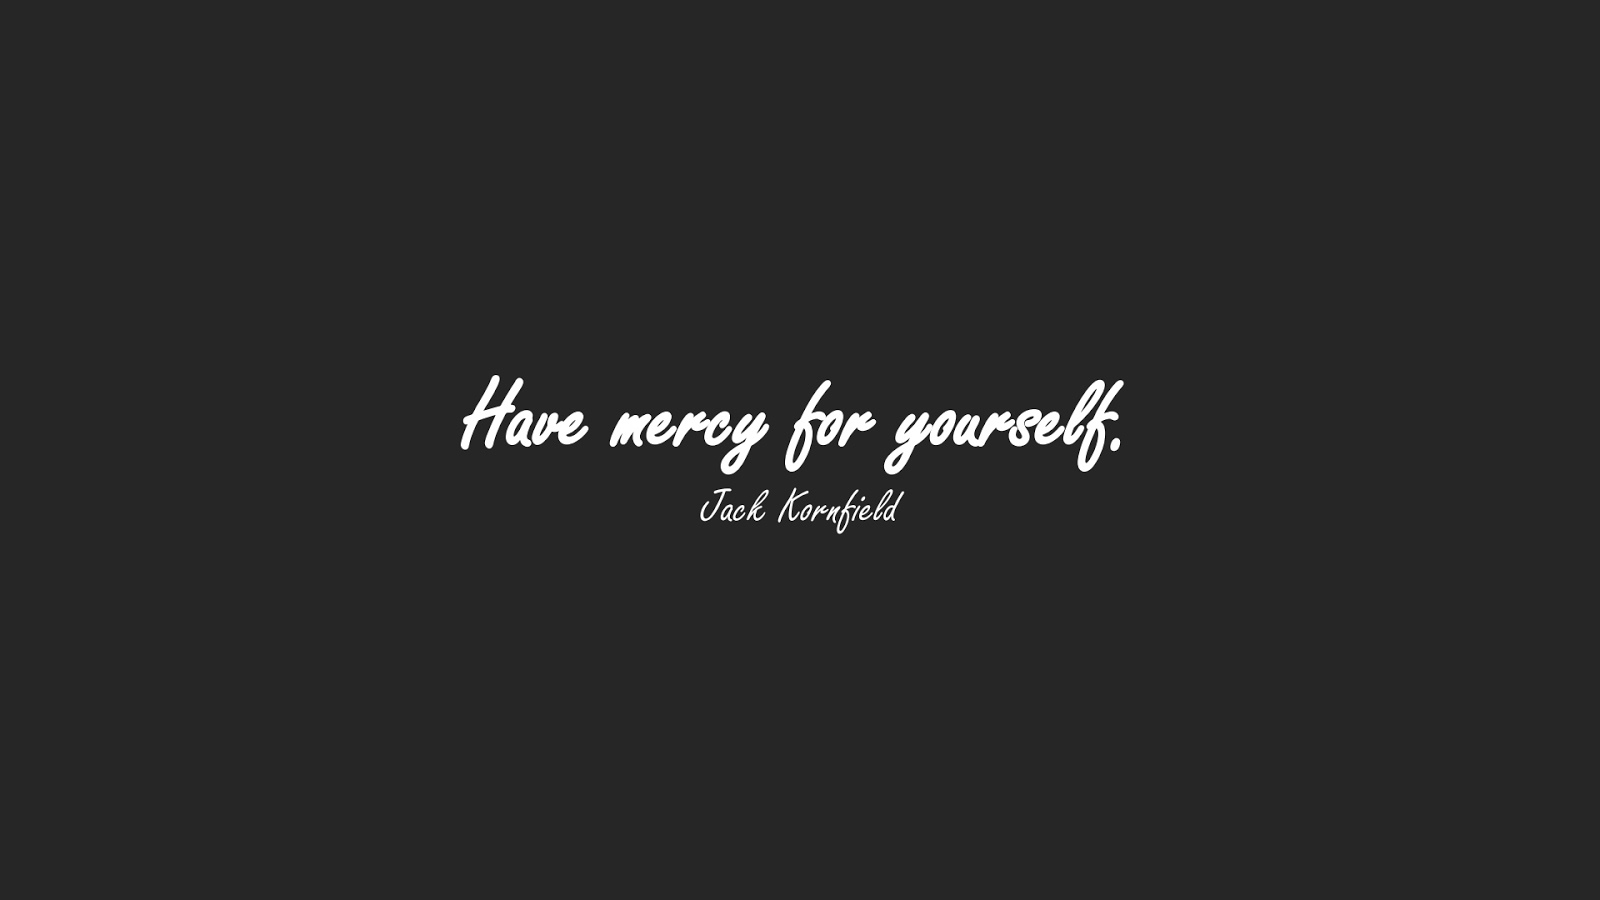 12 Love Yourself Quotes - Wallpaper Caption